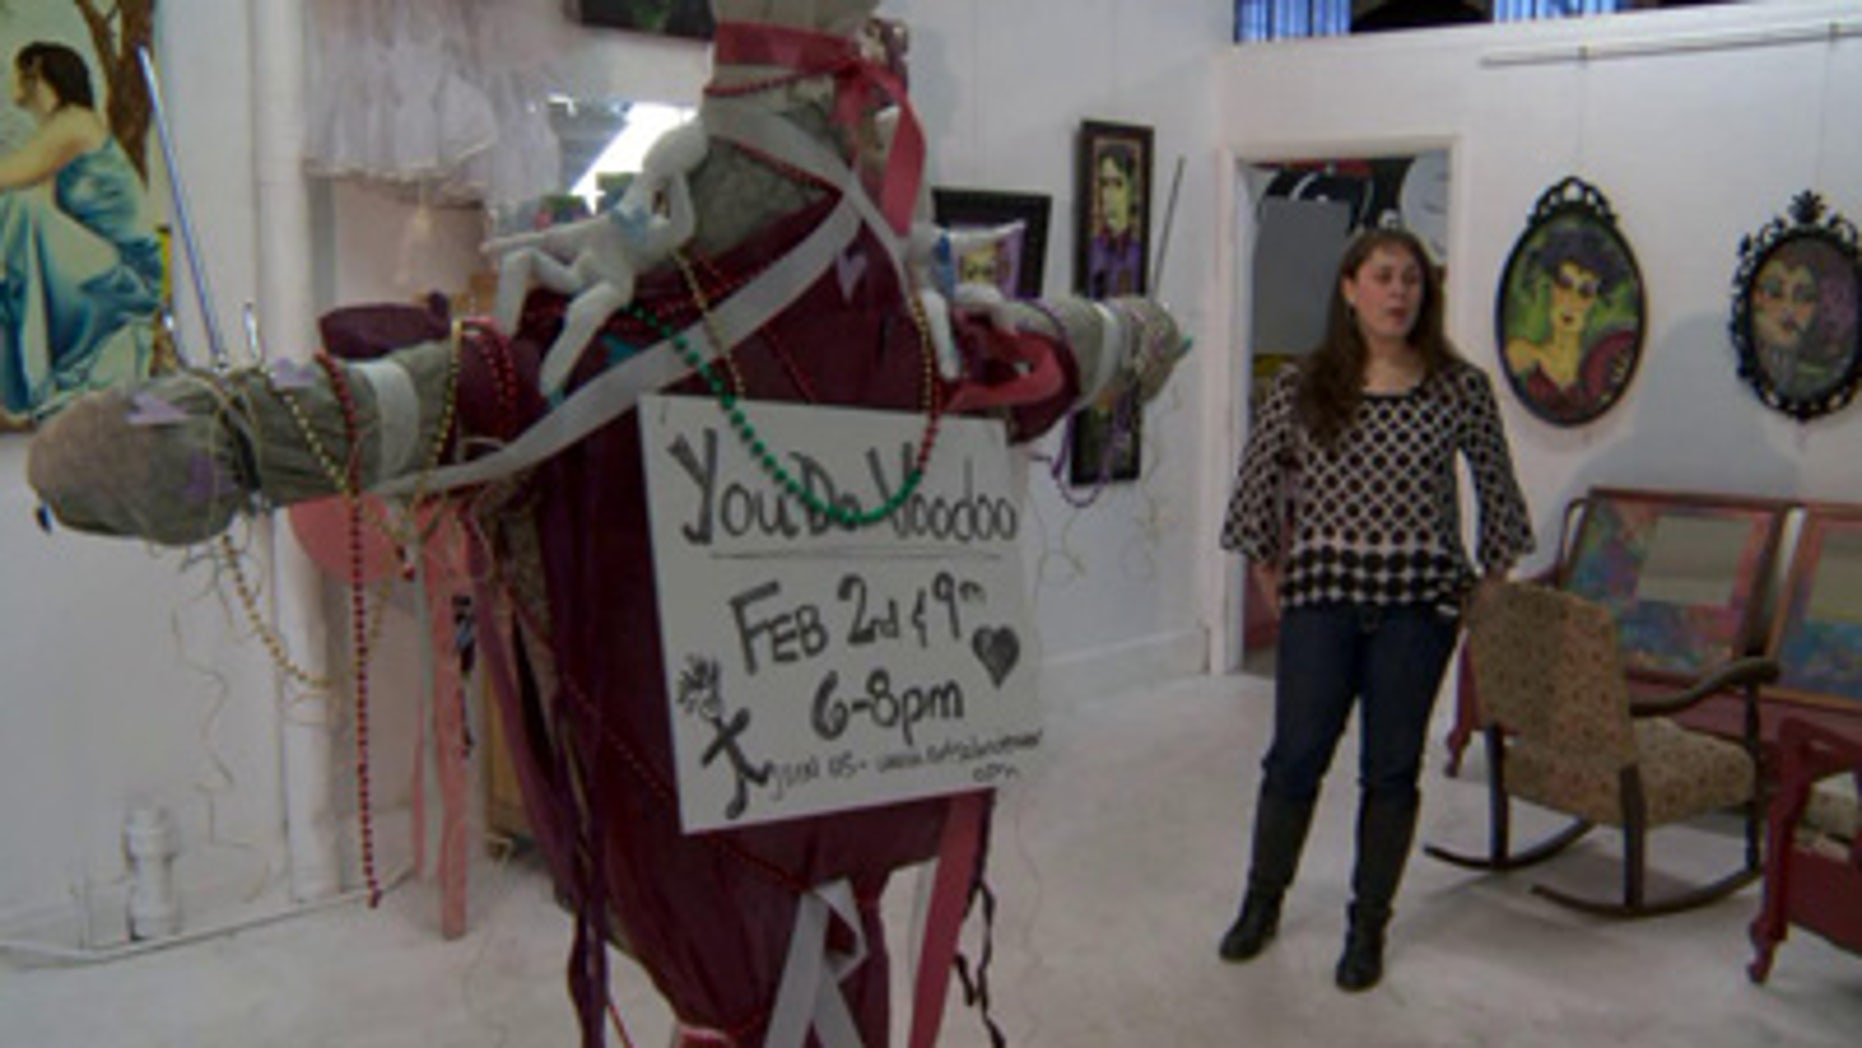 Dozens of men and women literally stick it to love while attending a voodoo-doll-making class offered by The Art Salon in Denver, Col.